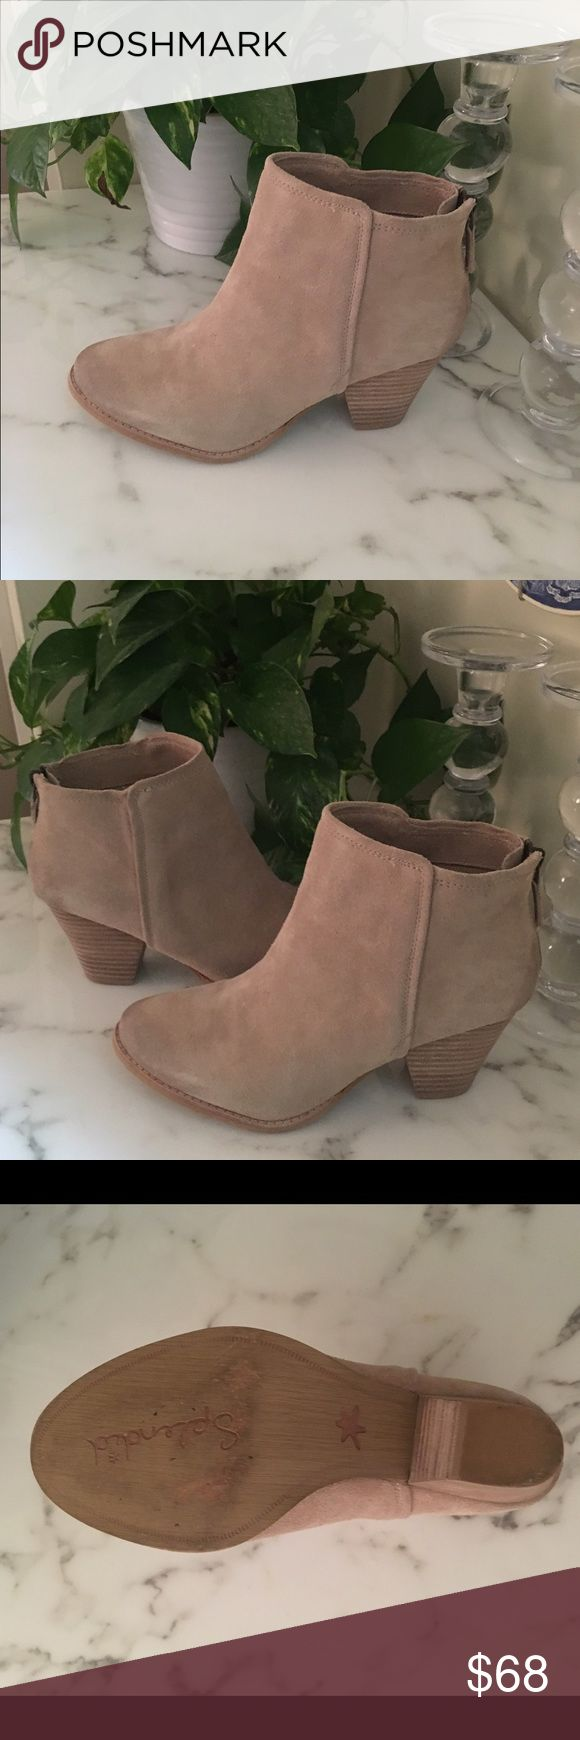 """Splendid """"Roland"""" Nude Bootie. Size 8.5. Splendid Suede Nude Tan Roland Booties. Like new with minimal sole wear. Size 8.5 Splendid Shoes Ankle Boots & Booties"""